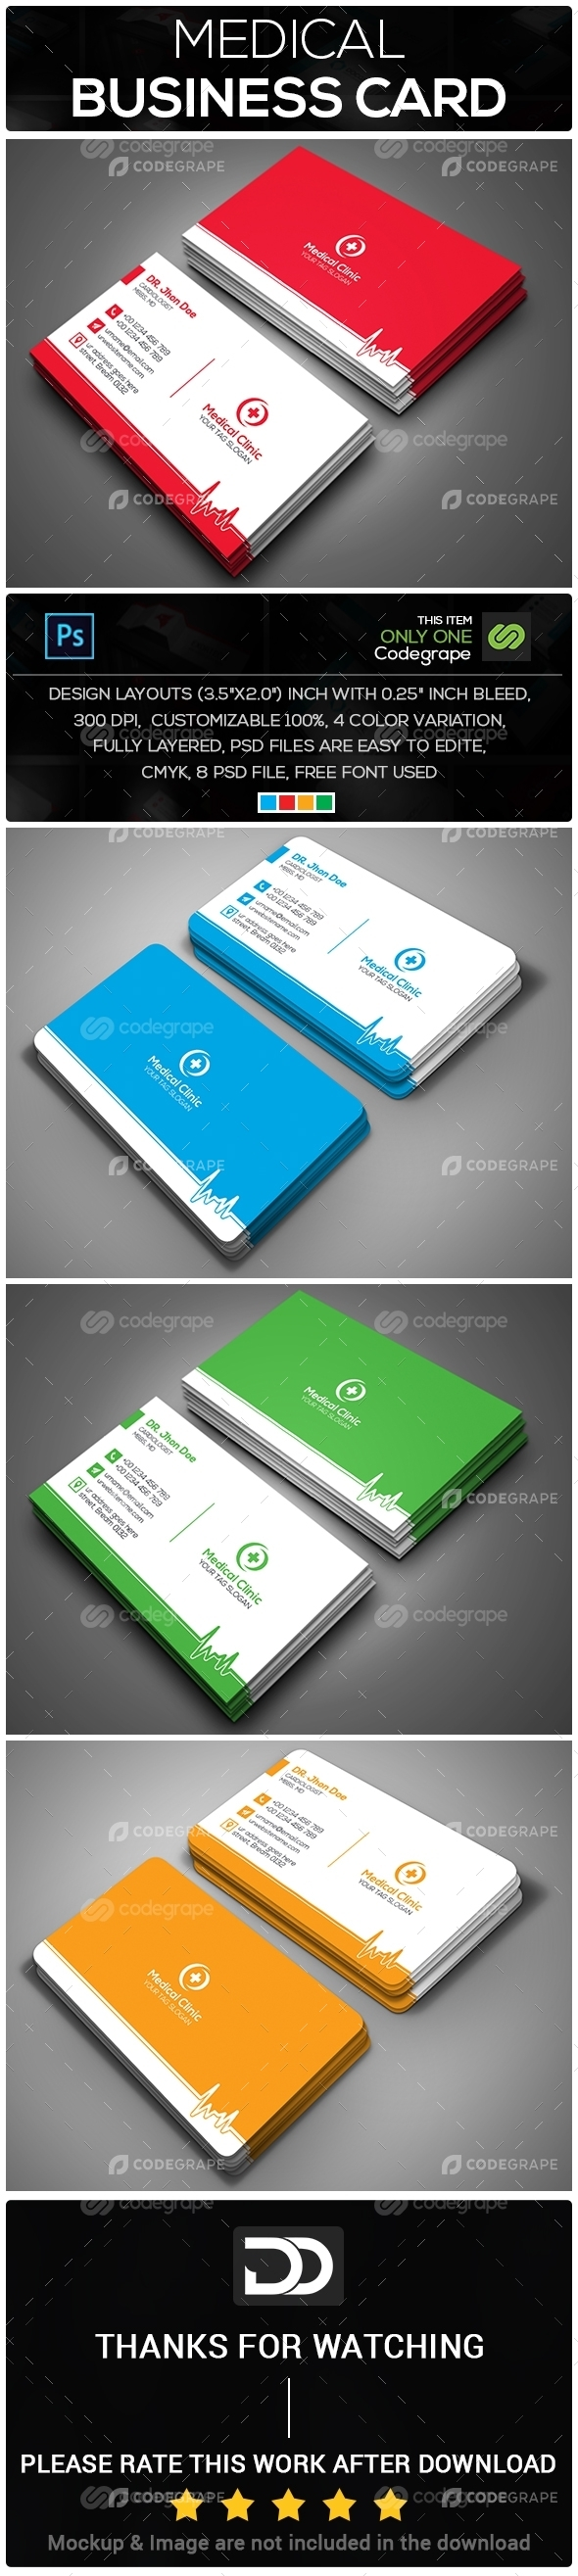 Medical Business Card - Print | CodeGrape